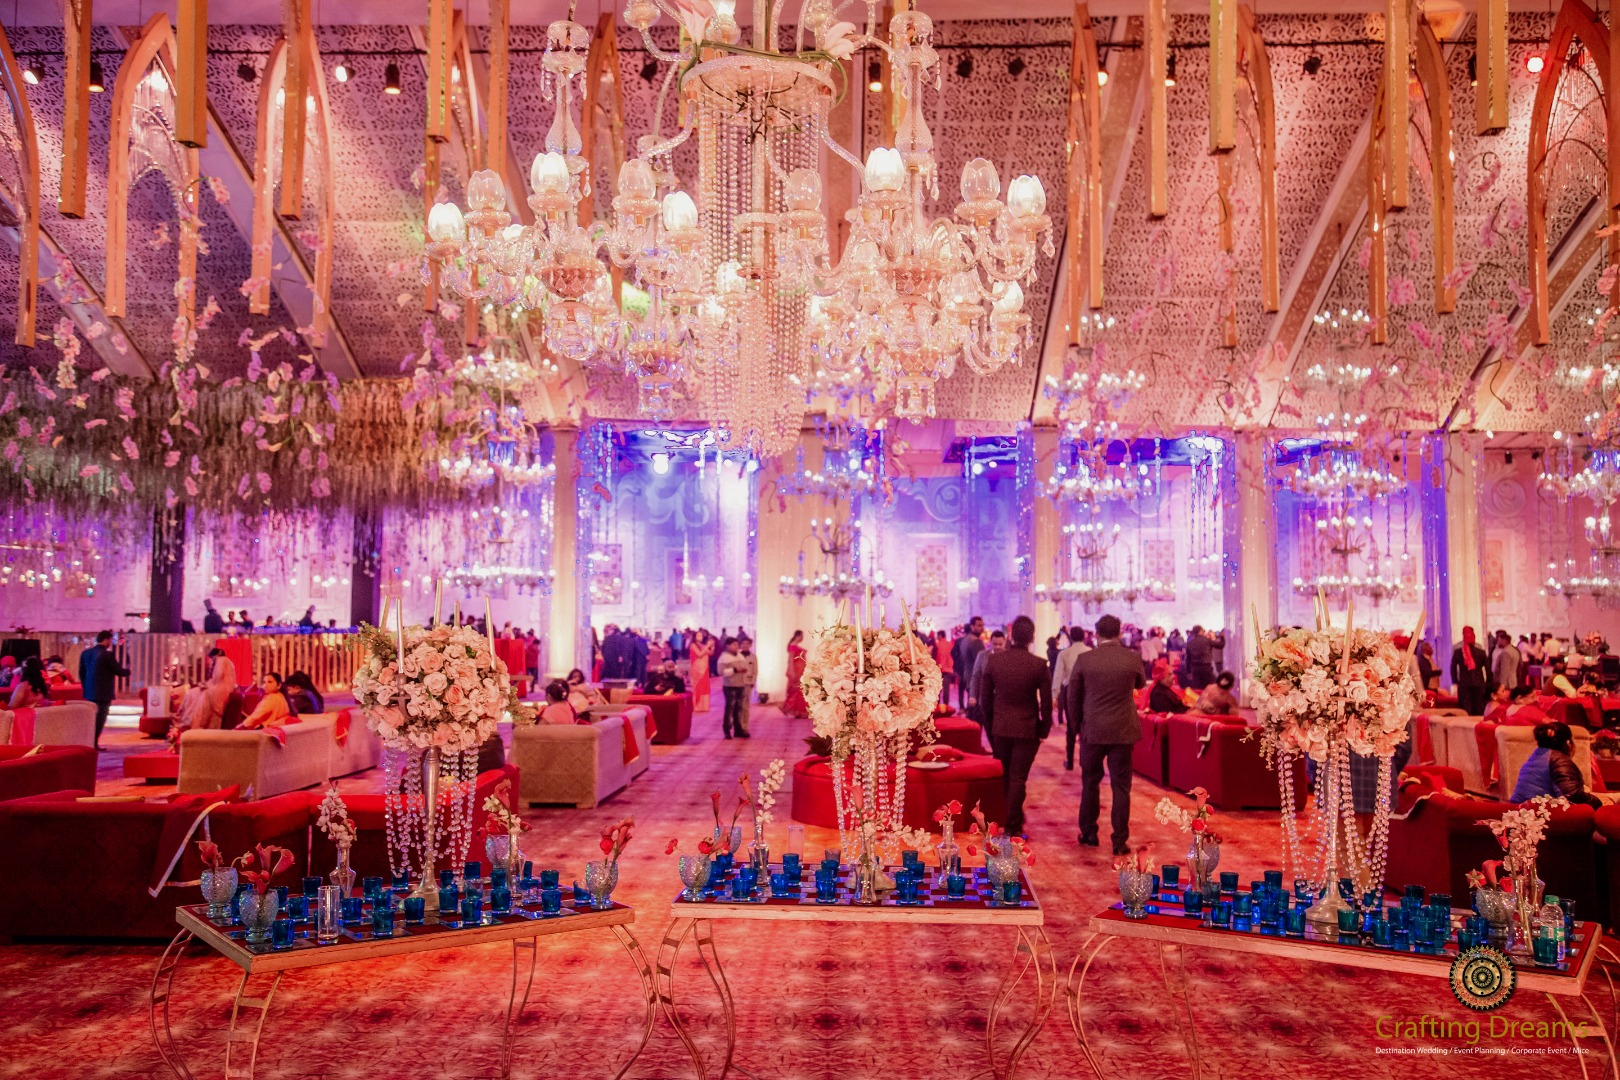 Grand Indoor Wedding Decoration with crystals and chandeliers.